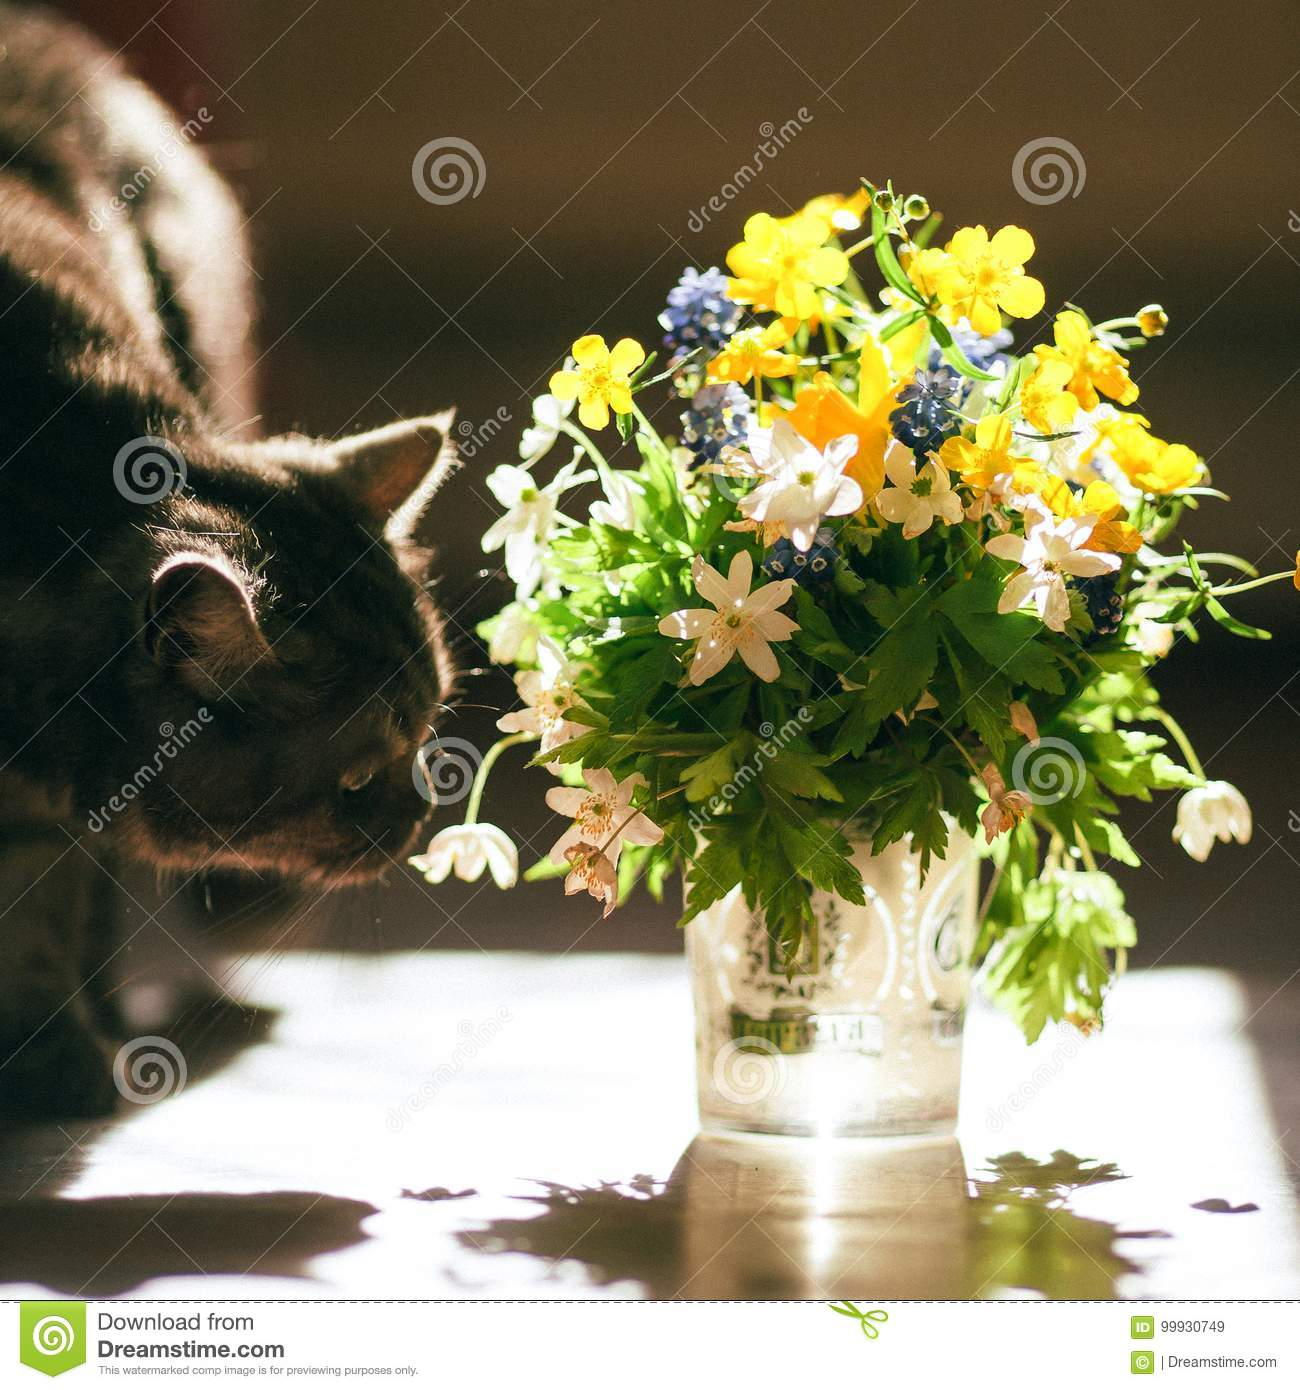 The Cat And The Bouquet Of Flowers Stock Image Image Of Flower